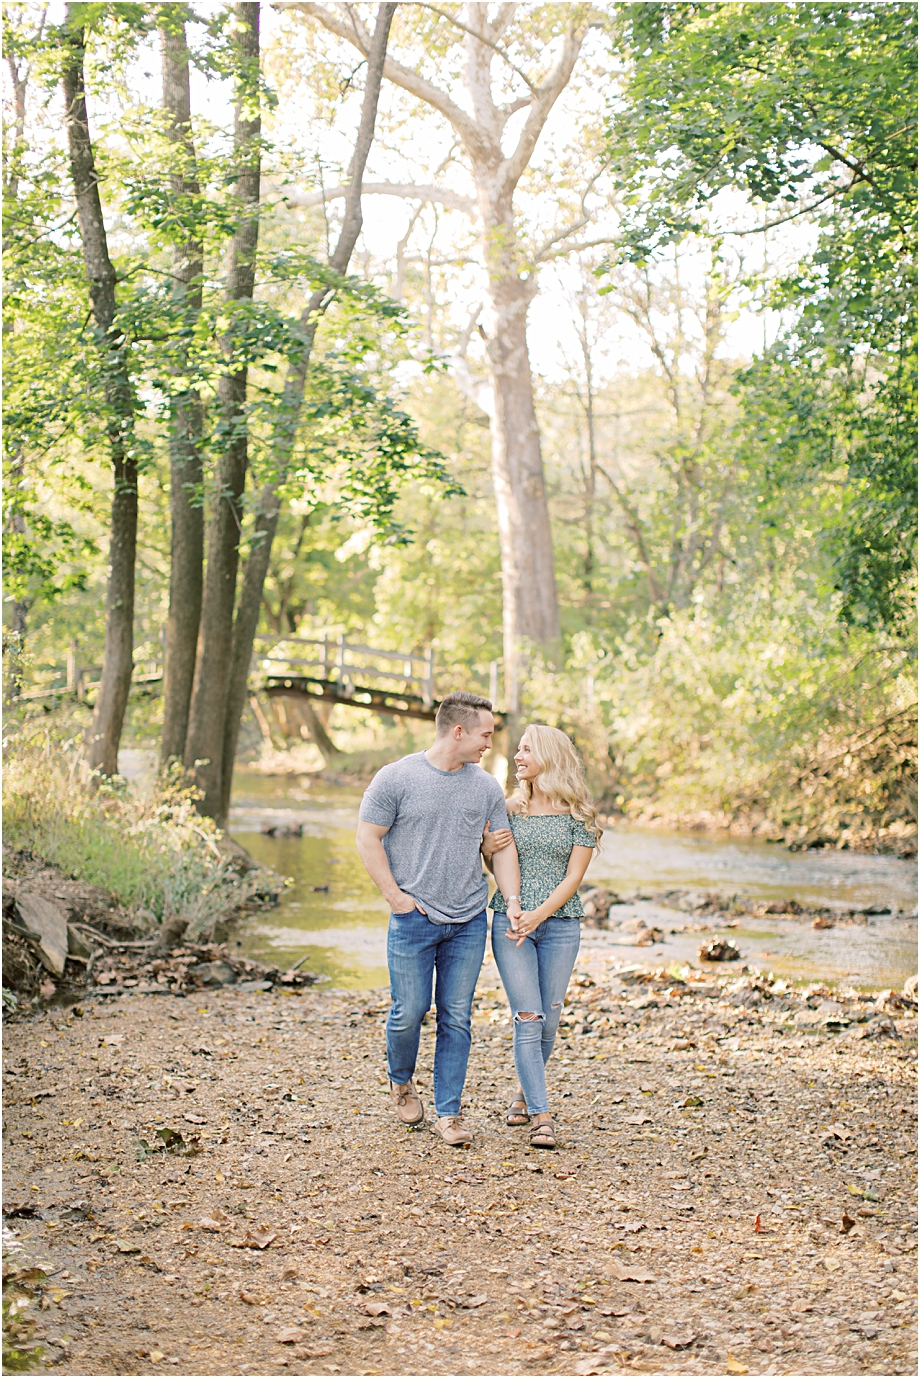 Valley Forge Engagement Photography | Sarah Canning Photography